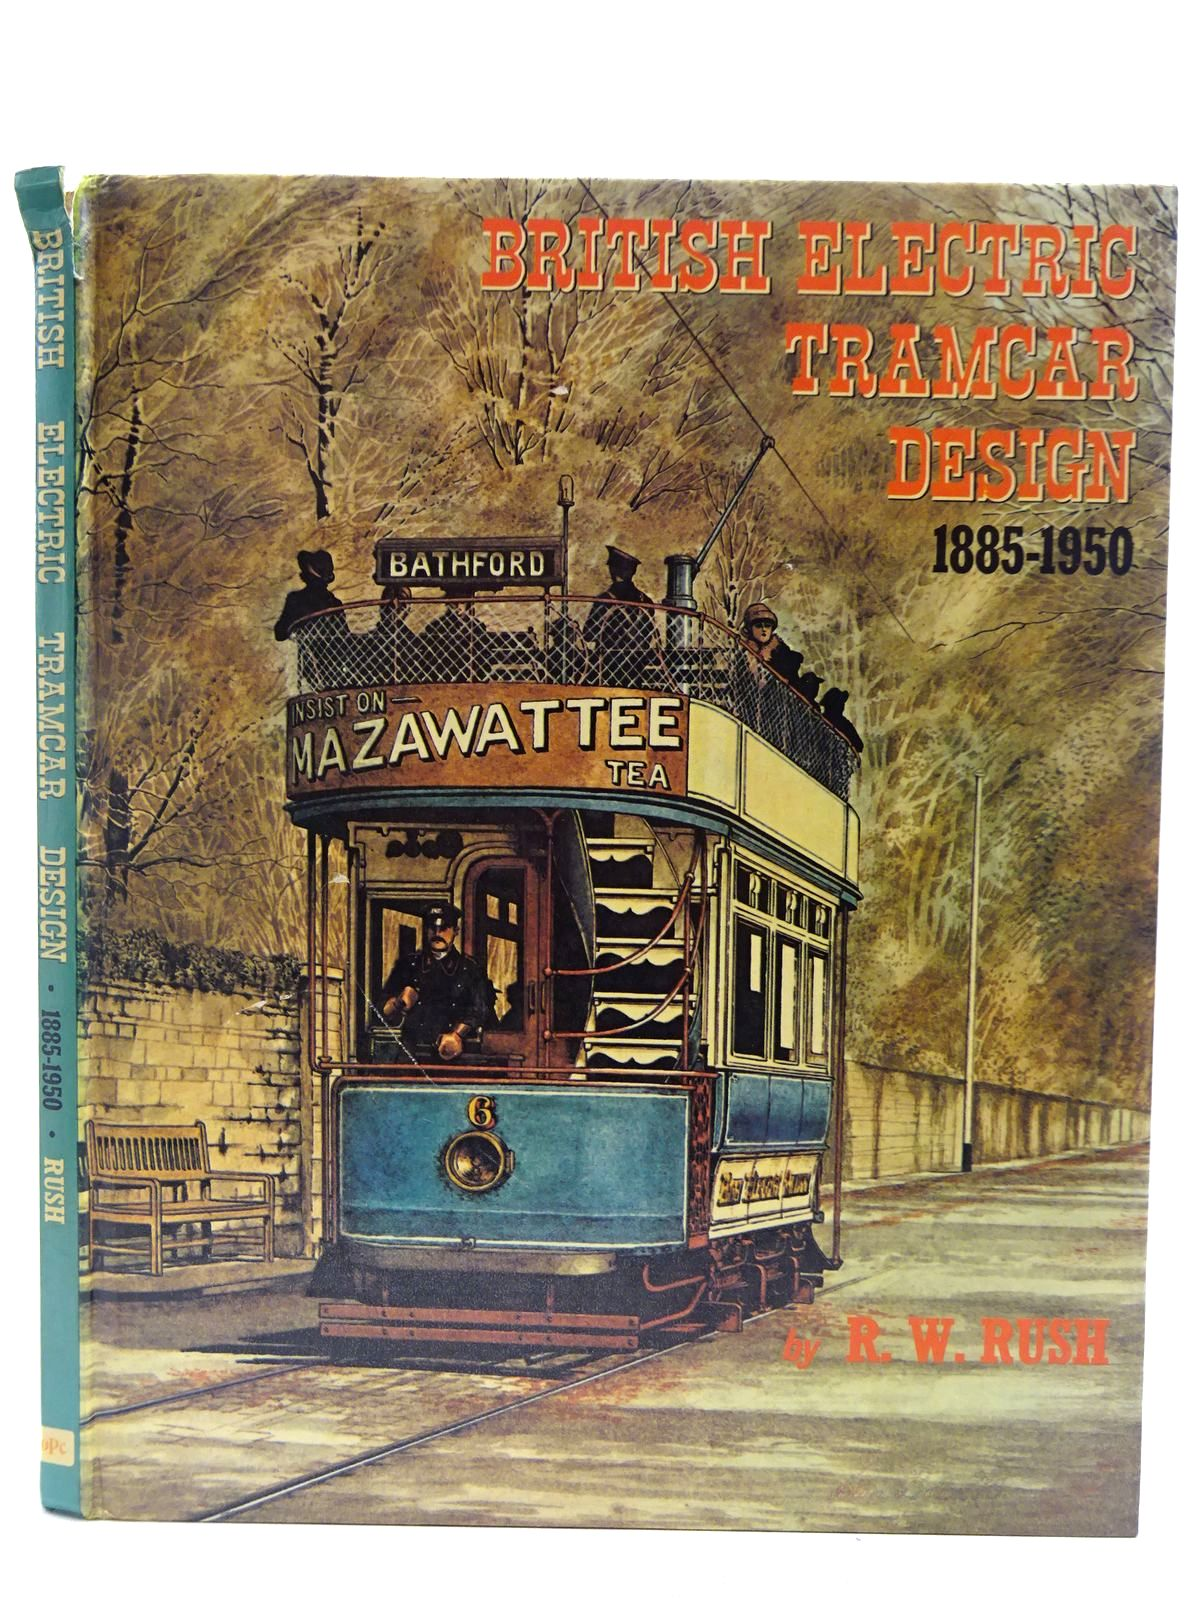 Photo of BRITISH ELECTRIC TRAMCAR DESIGNS 1885 - 1950 written by Rush, R.W. published by Oxford Publishing Co (STOCK CODE: 2128549)  for sale by Stella & Rose's Books